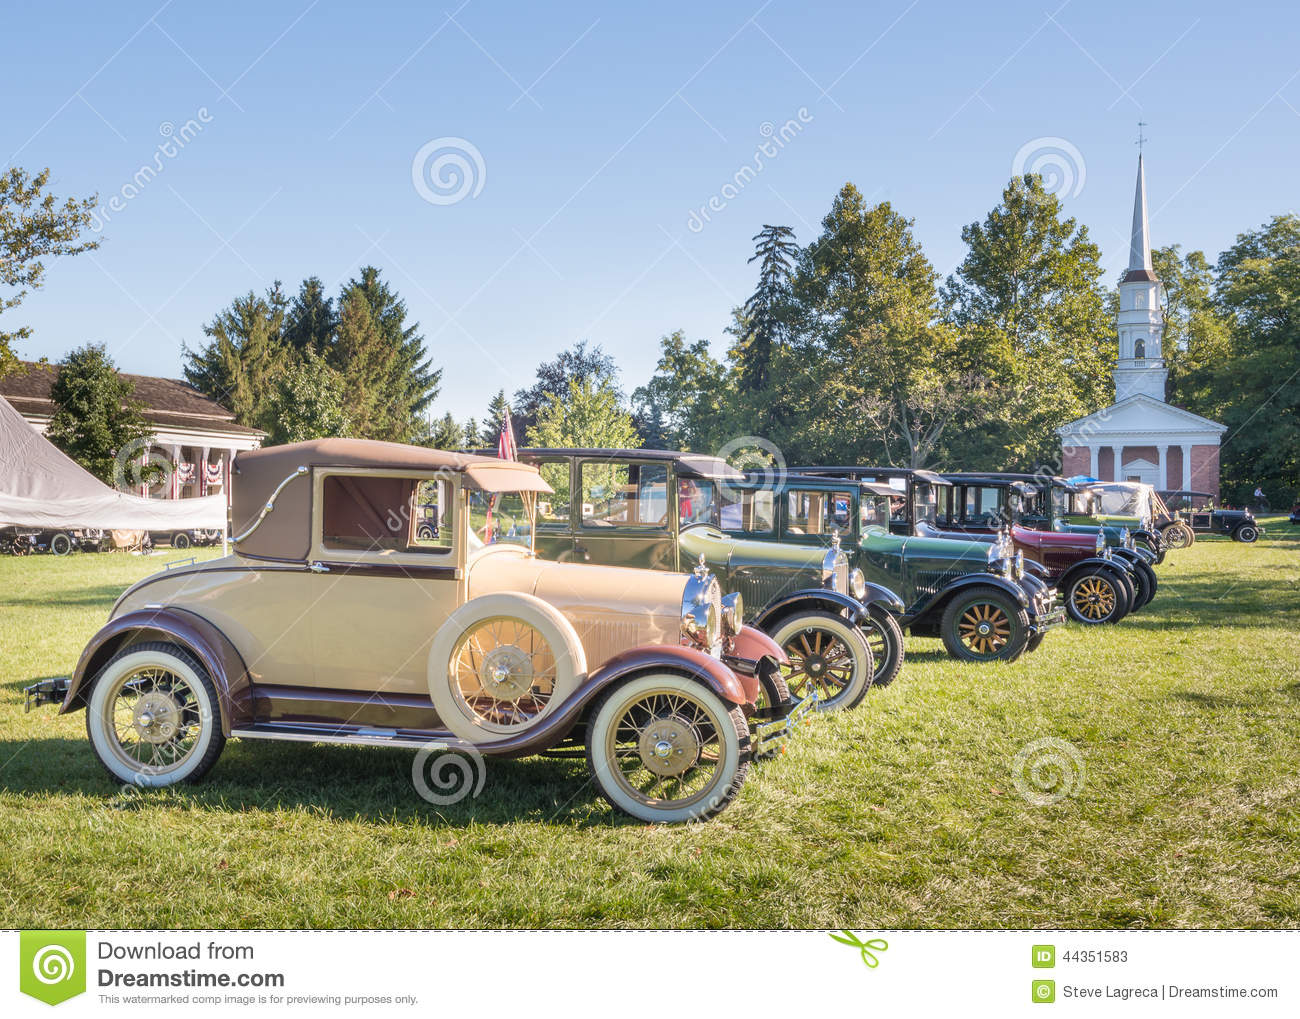 72157647323214595 besides Watch additionally Showthread moreover Editorial Stock Photo Ford Model Dearborn Mi Usa September Eight Antique Cars Including Front Martha Mary Chapel Greenfield Village Old Image44351583 likewise 5735271921. on old car festival greenfield village